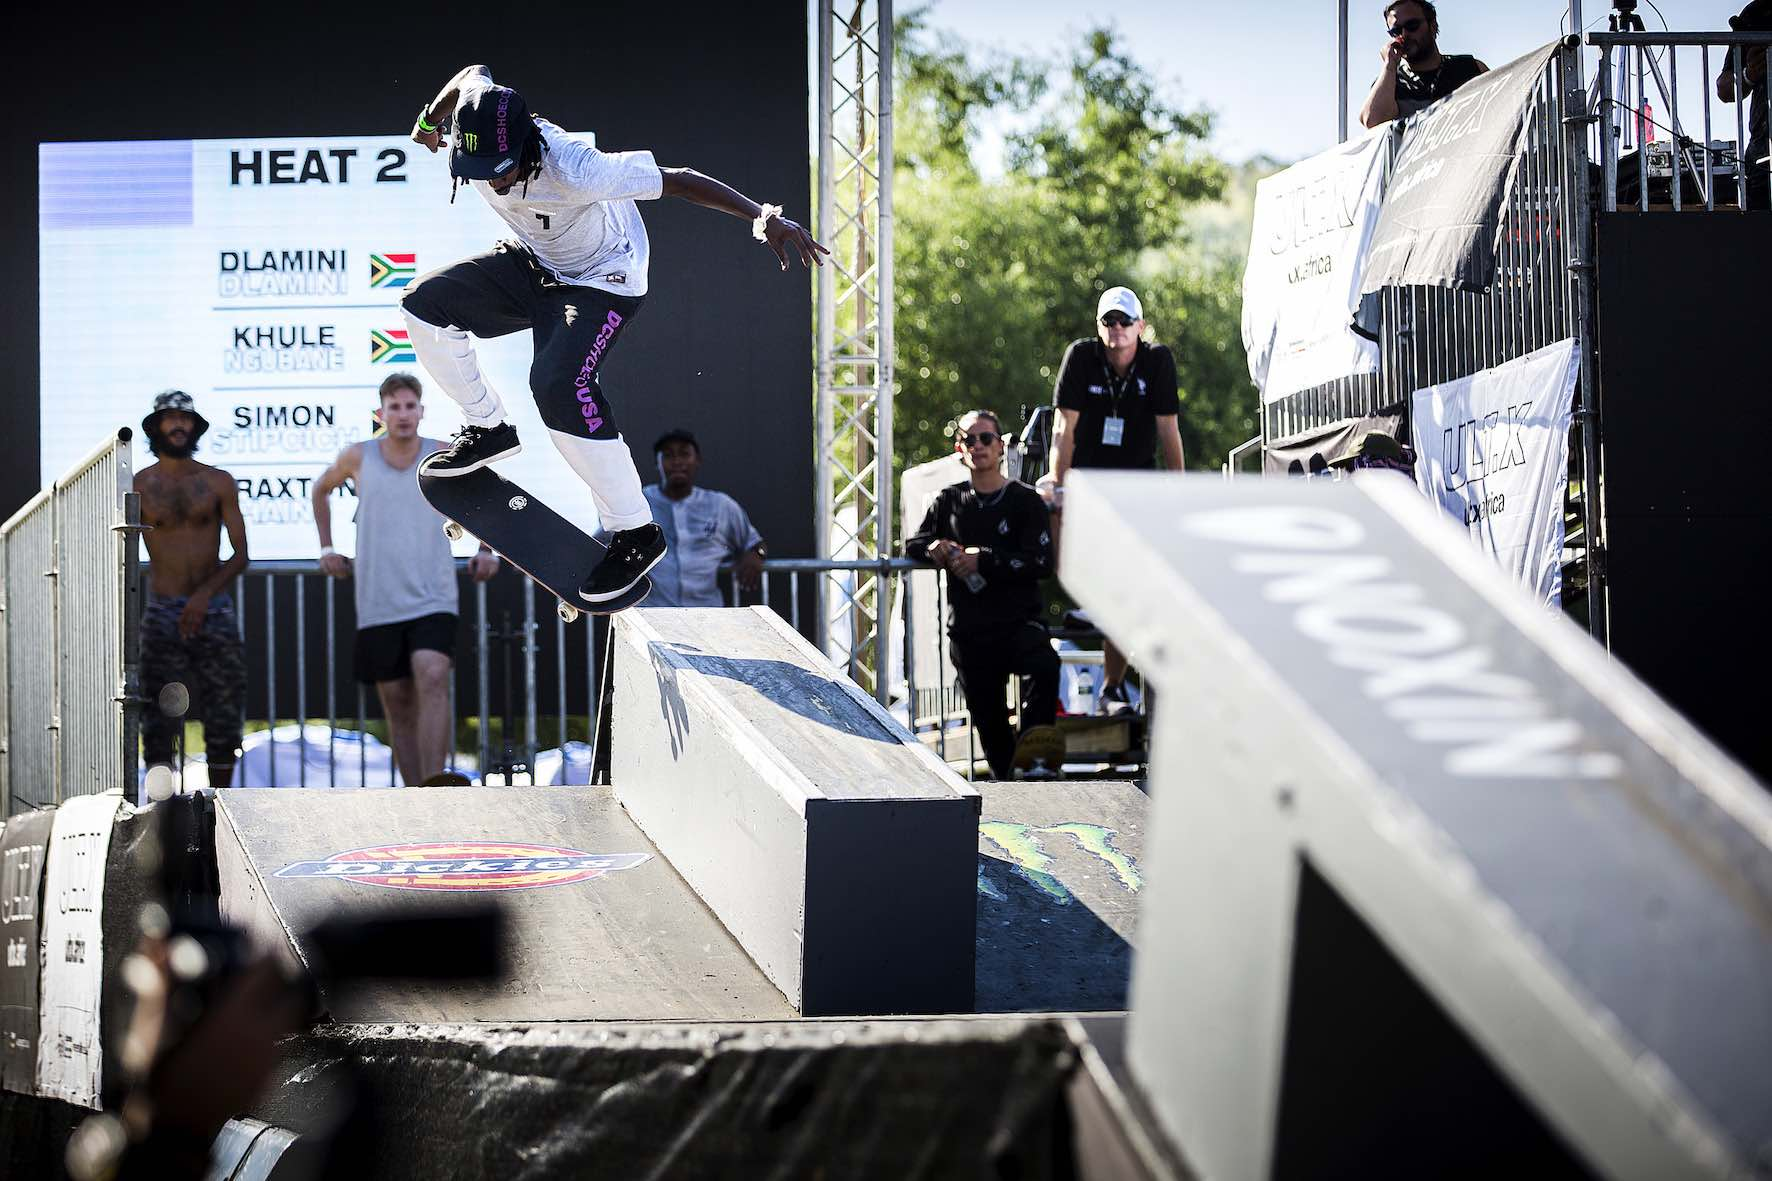 Khule Ngubane taking 2nd place at the Ult.X 2019 Skateboarding contest